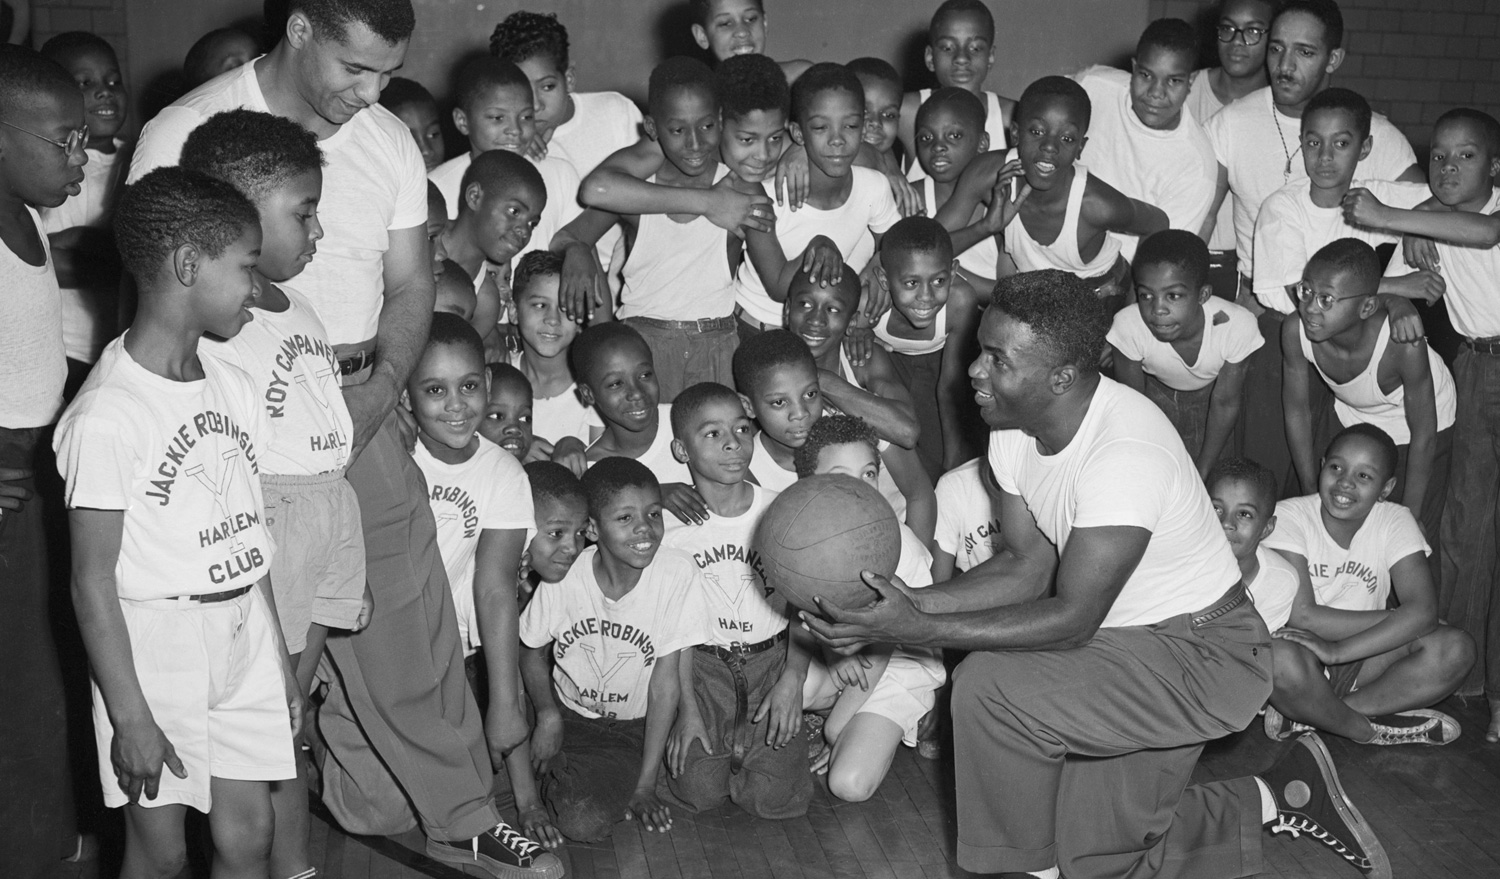 Jackie Robinson and Roy Campanella of the Brooklyn Dodgers at a YMCA Harlem basketball camp, circa 1940s.  Getty Images/Bettmann /Contributor